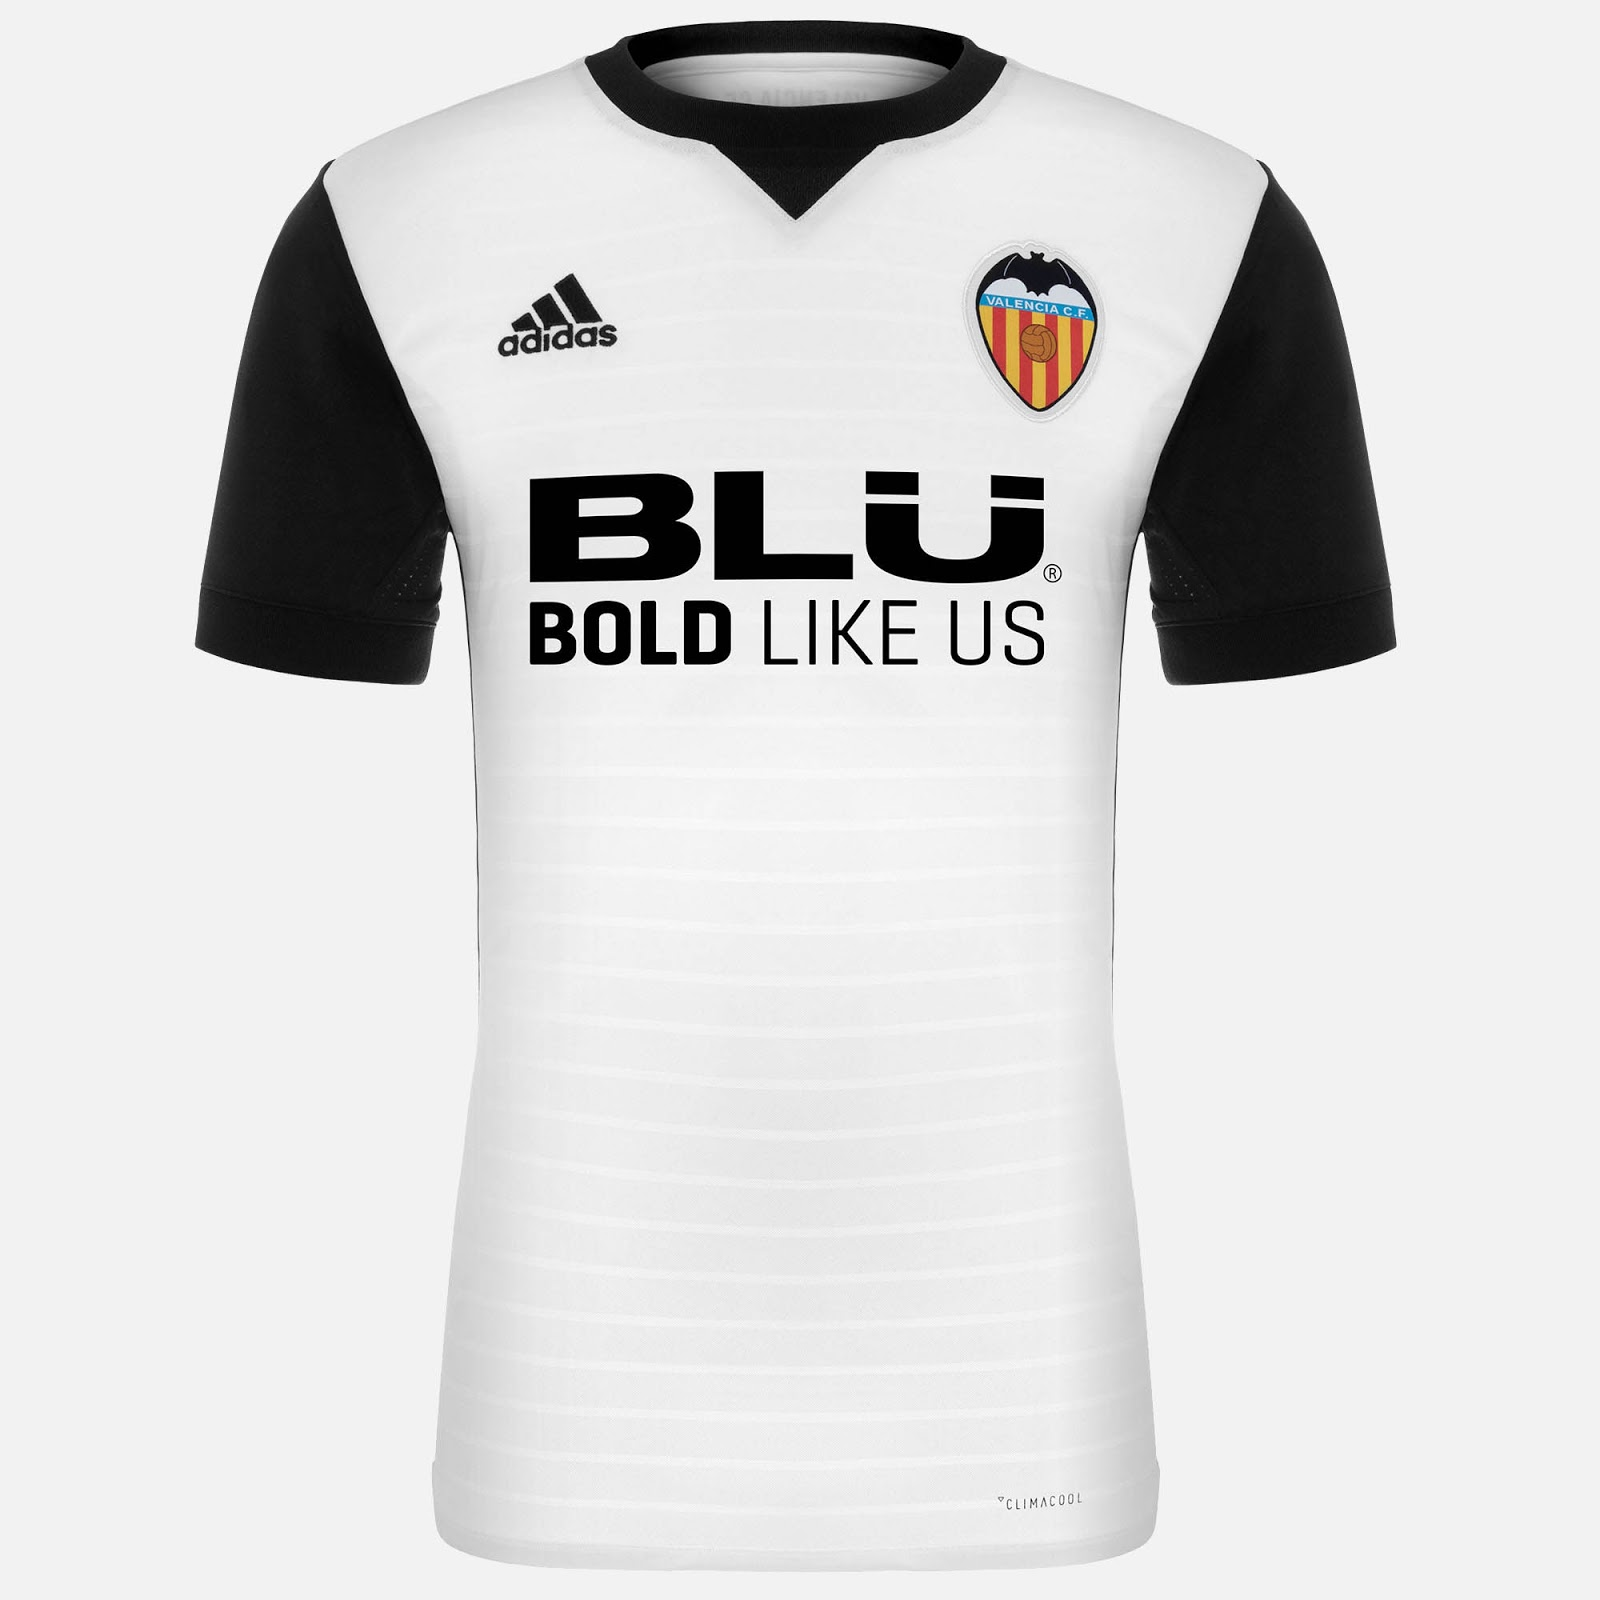 brand new 5afdc f70b8 Outstanding Valencia 2017-18 Home Kit Revealed